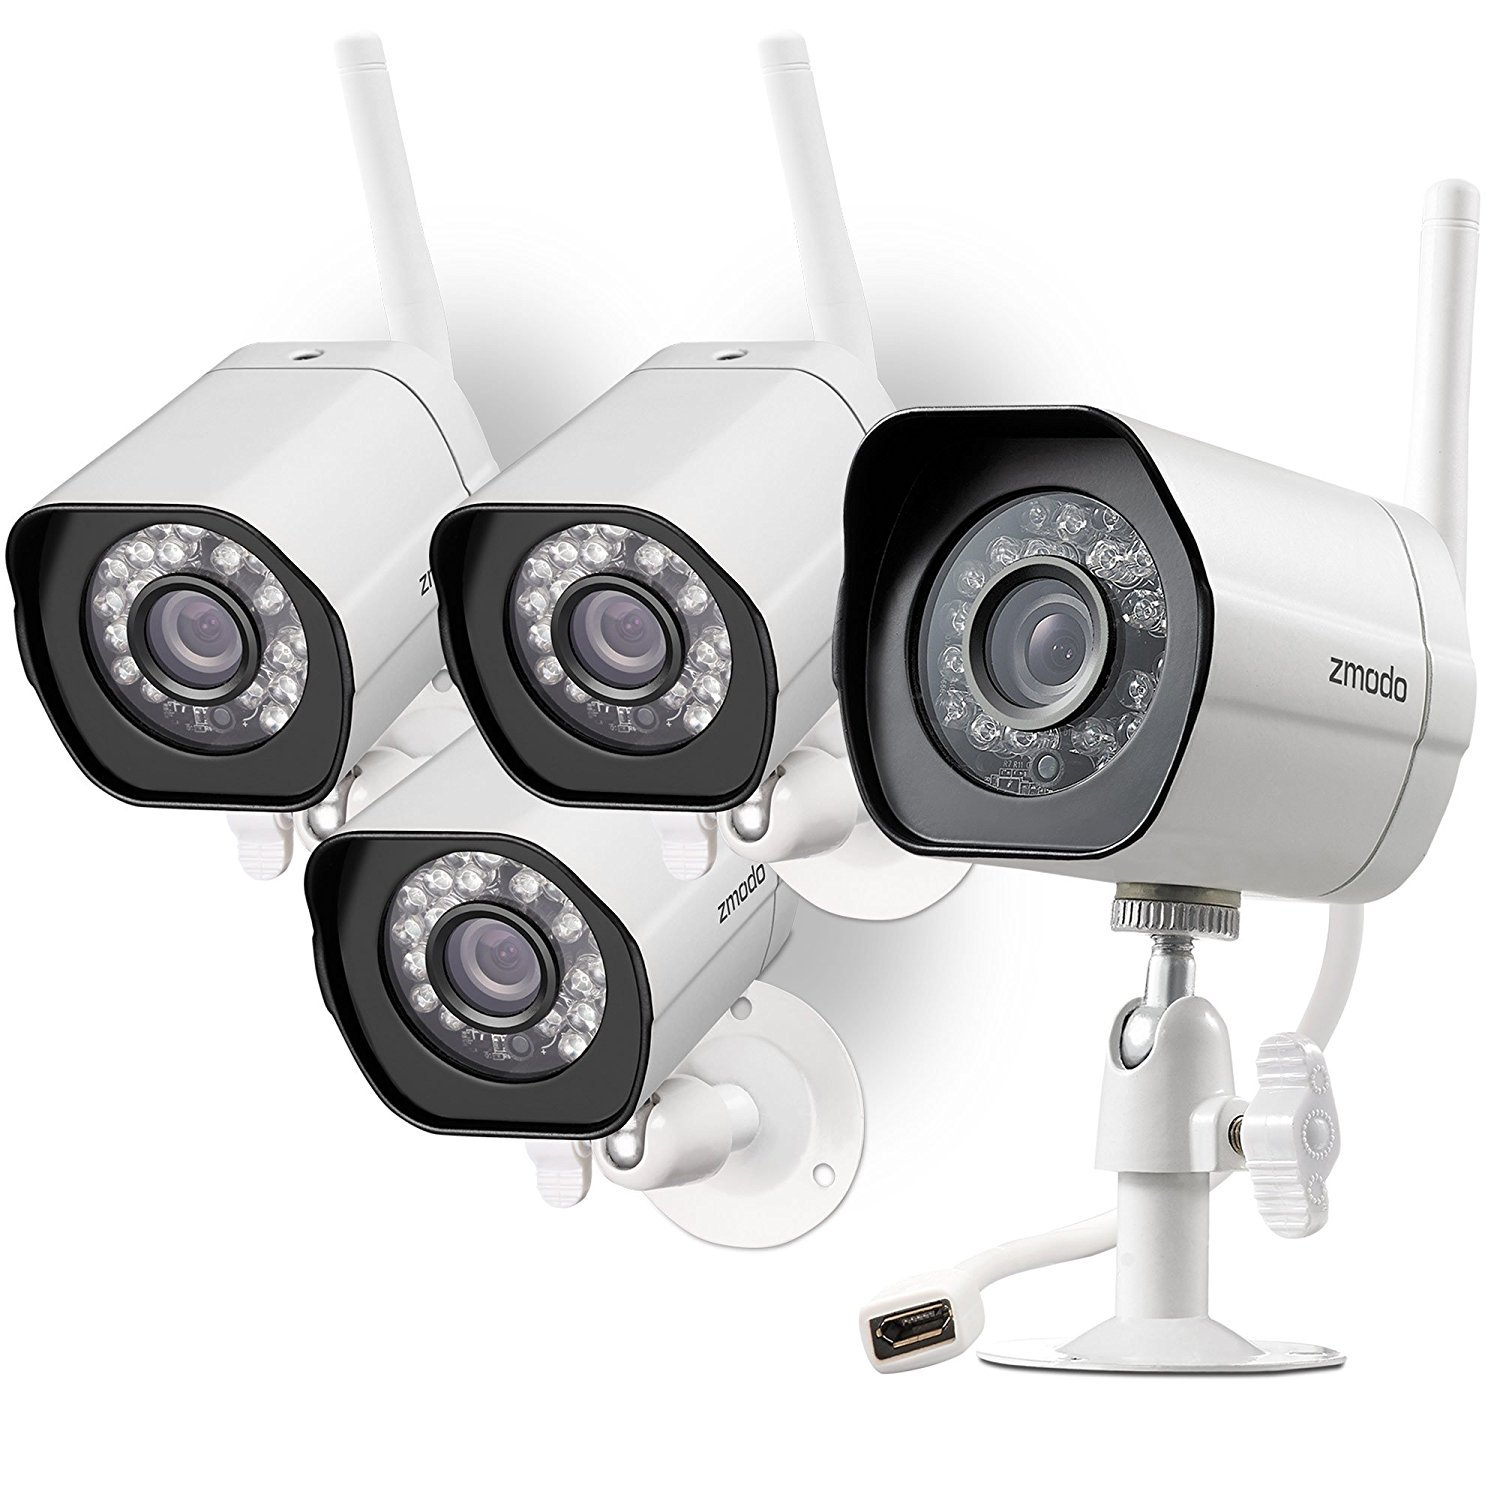 Amazon.com : Zmodo Wireless Security Camera System (4 pack) Smart HD ...